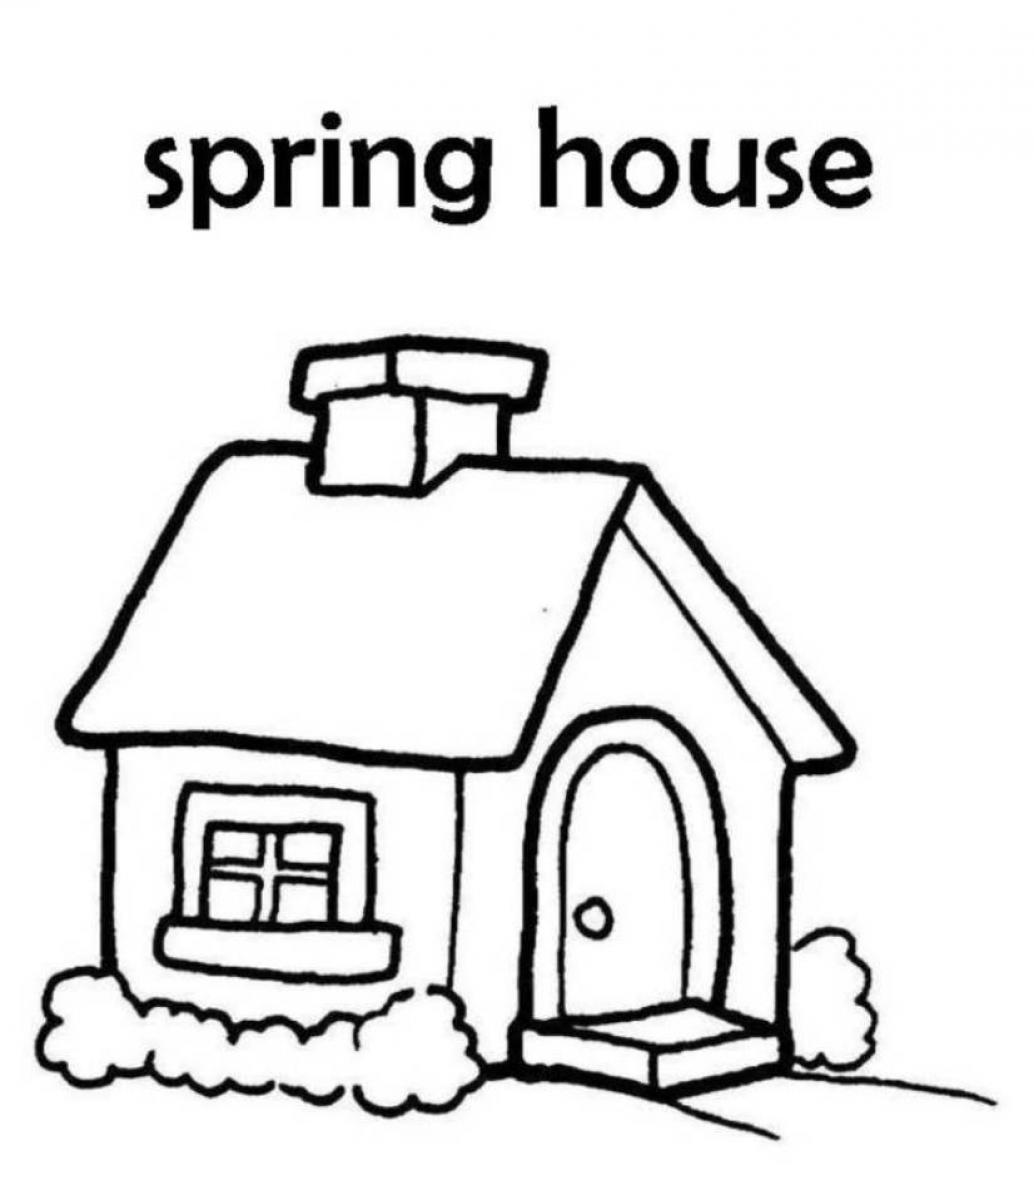 house coloring free printable house coloring pages for kids coloring house